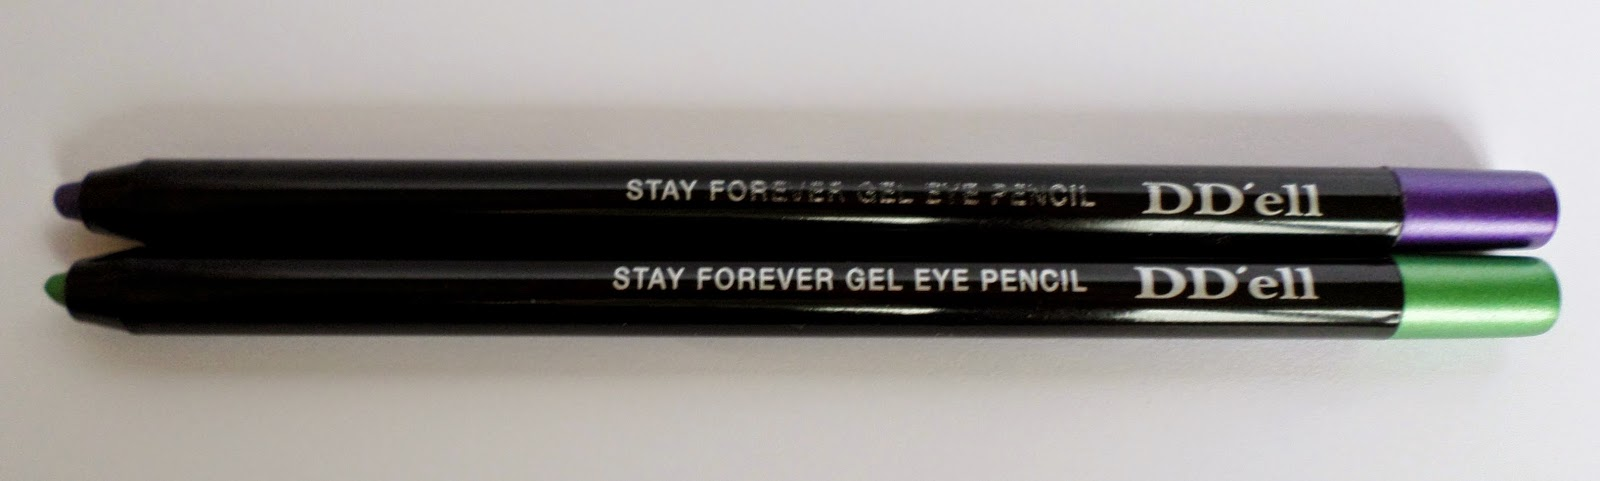 DD'ell Stay Forever Gel Eye Pencil 06 Twilight Purple and 08 Garden Light 1.2g rrp $14